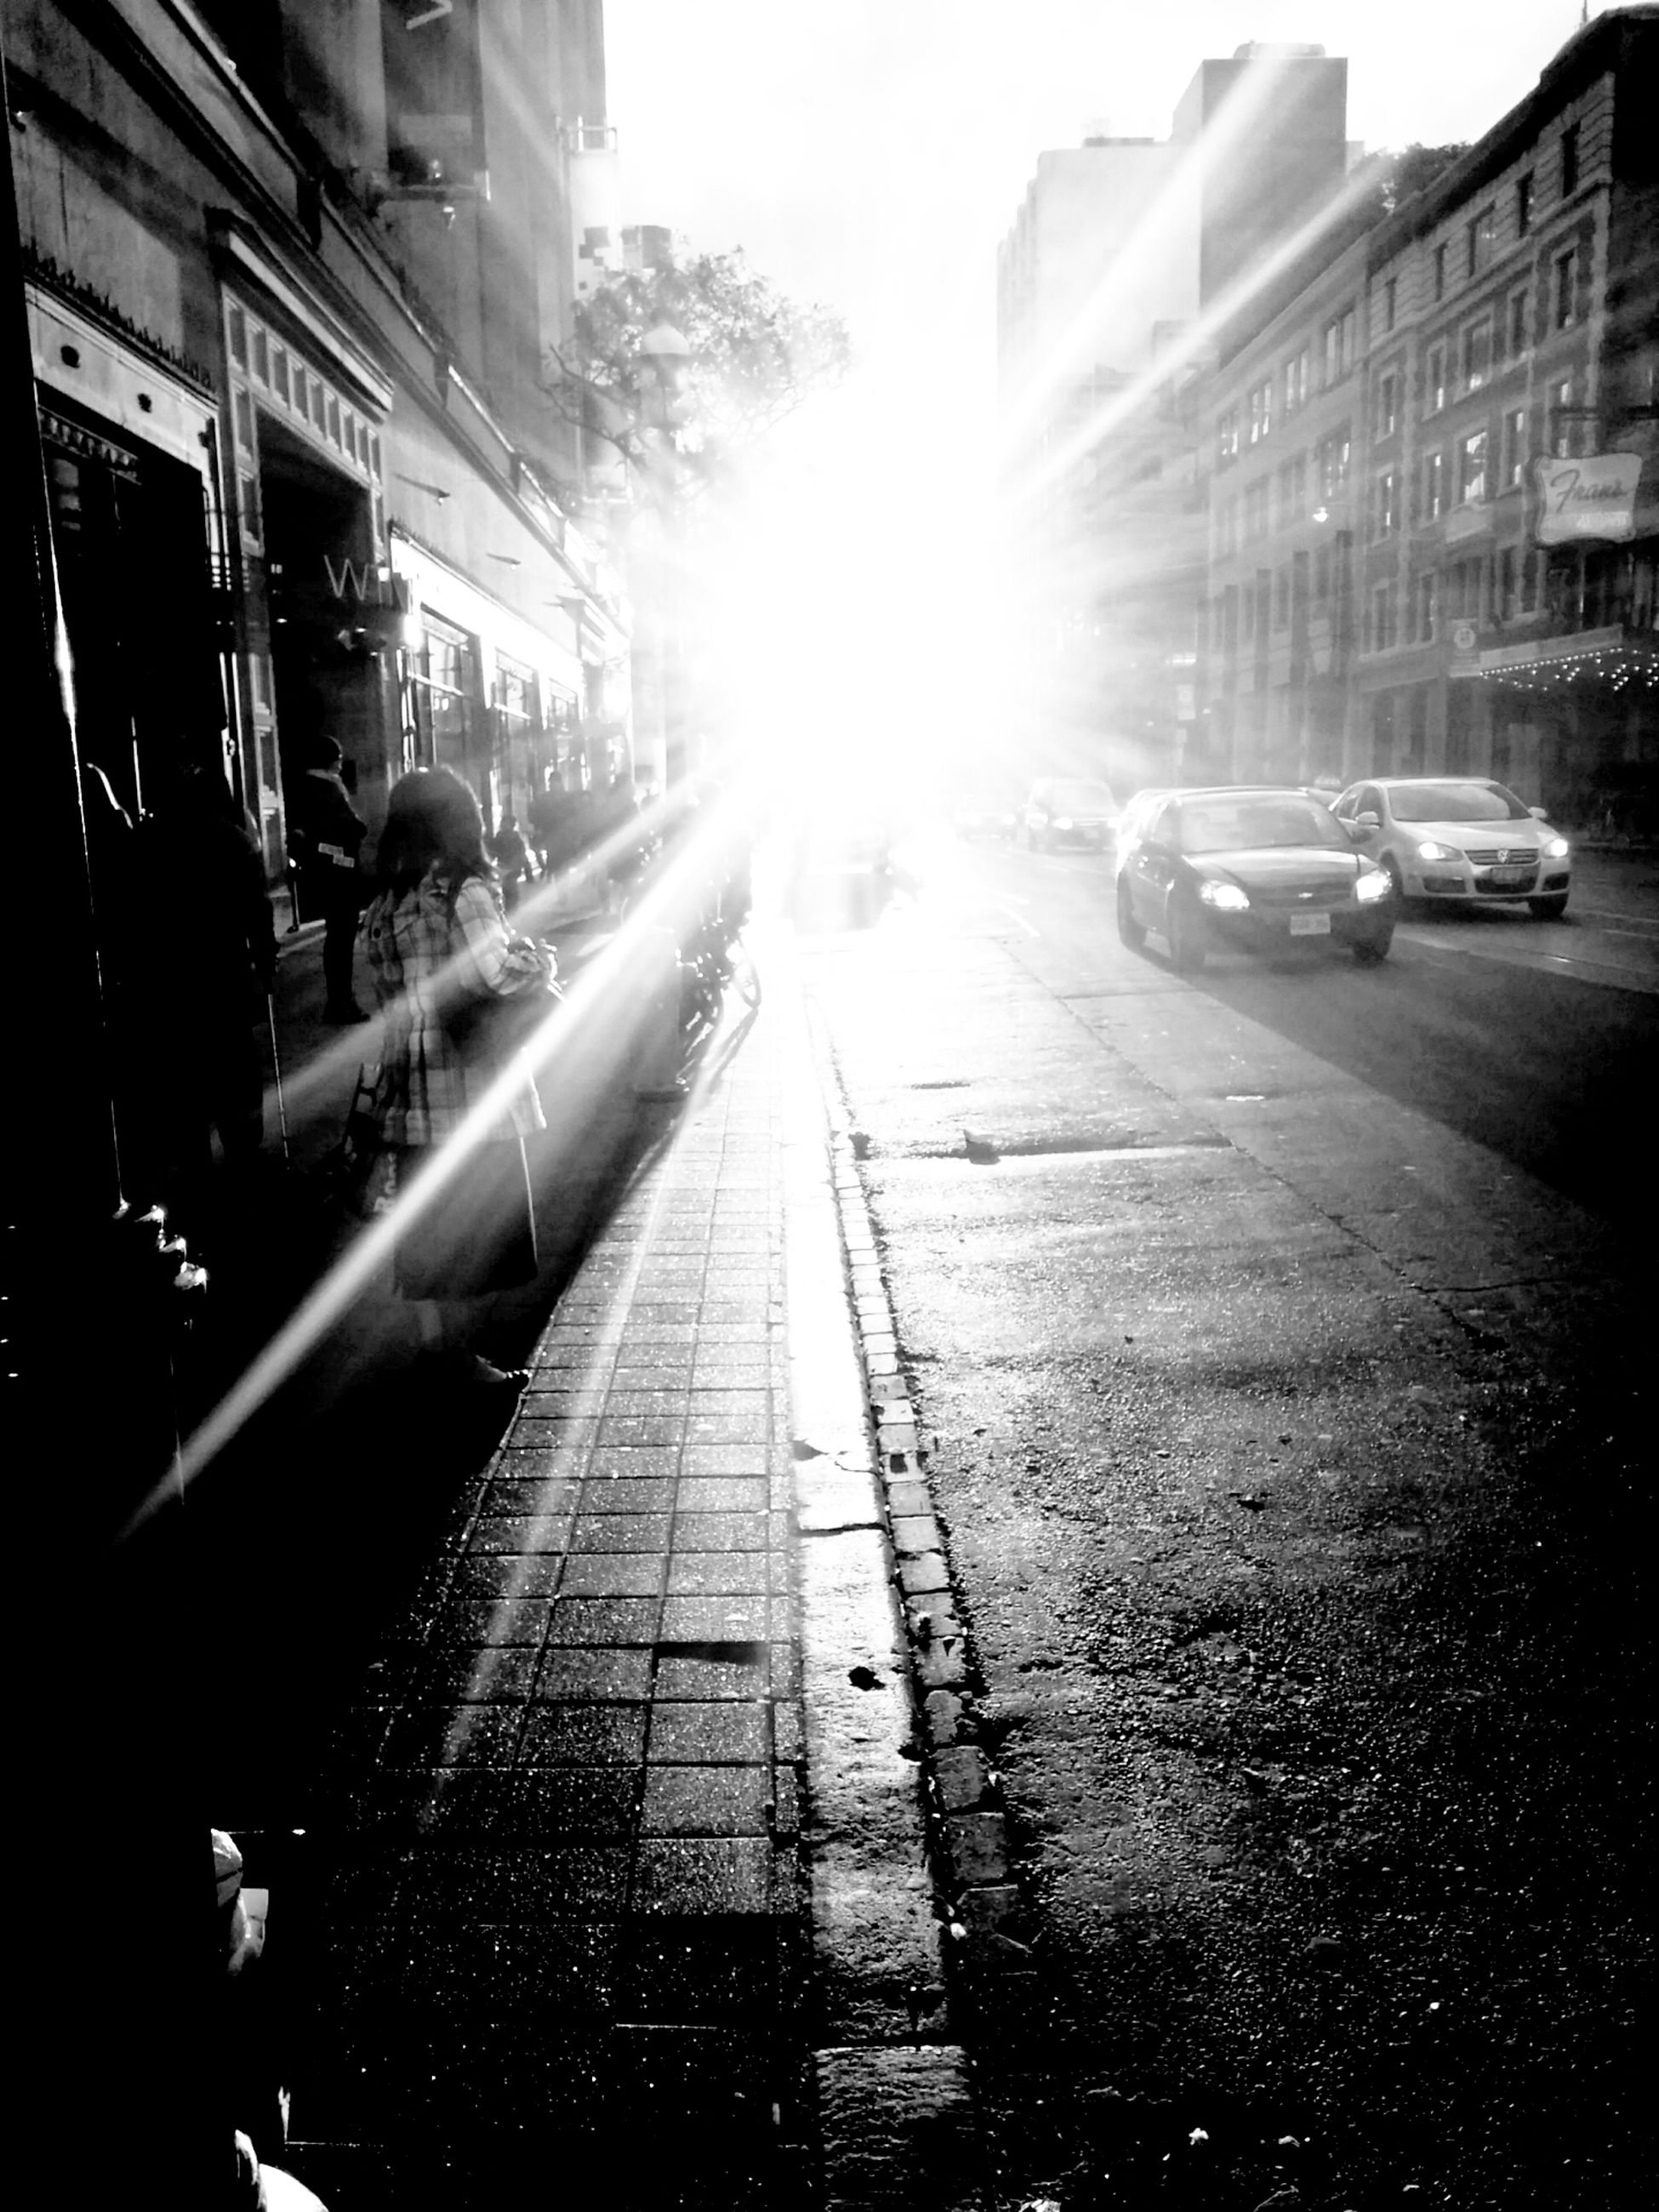 building exterior, transportation, architecture, car, built structure, land vehicle, city, mode of transport, street, sun, city street, sunlight, sunbeam, city life, lens flare, road, incidental people, building, road marking, traffic